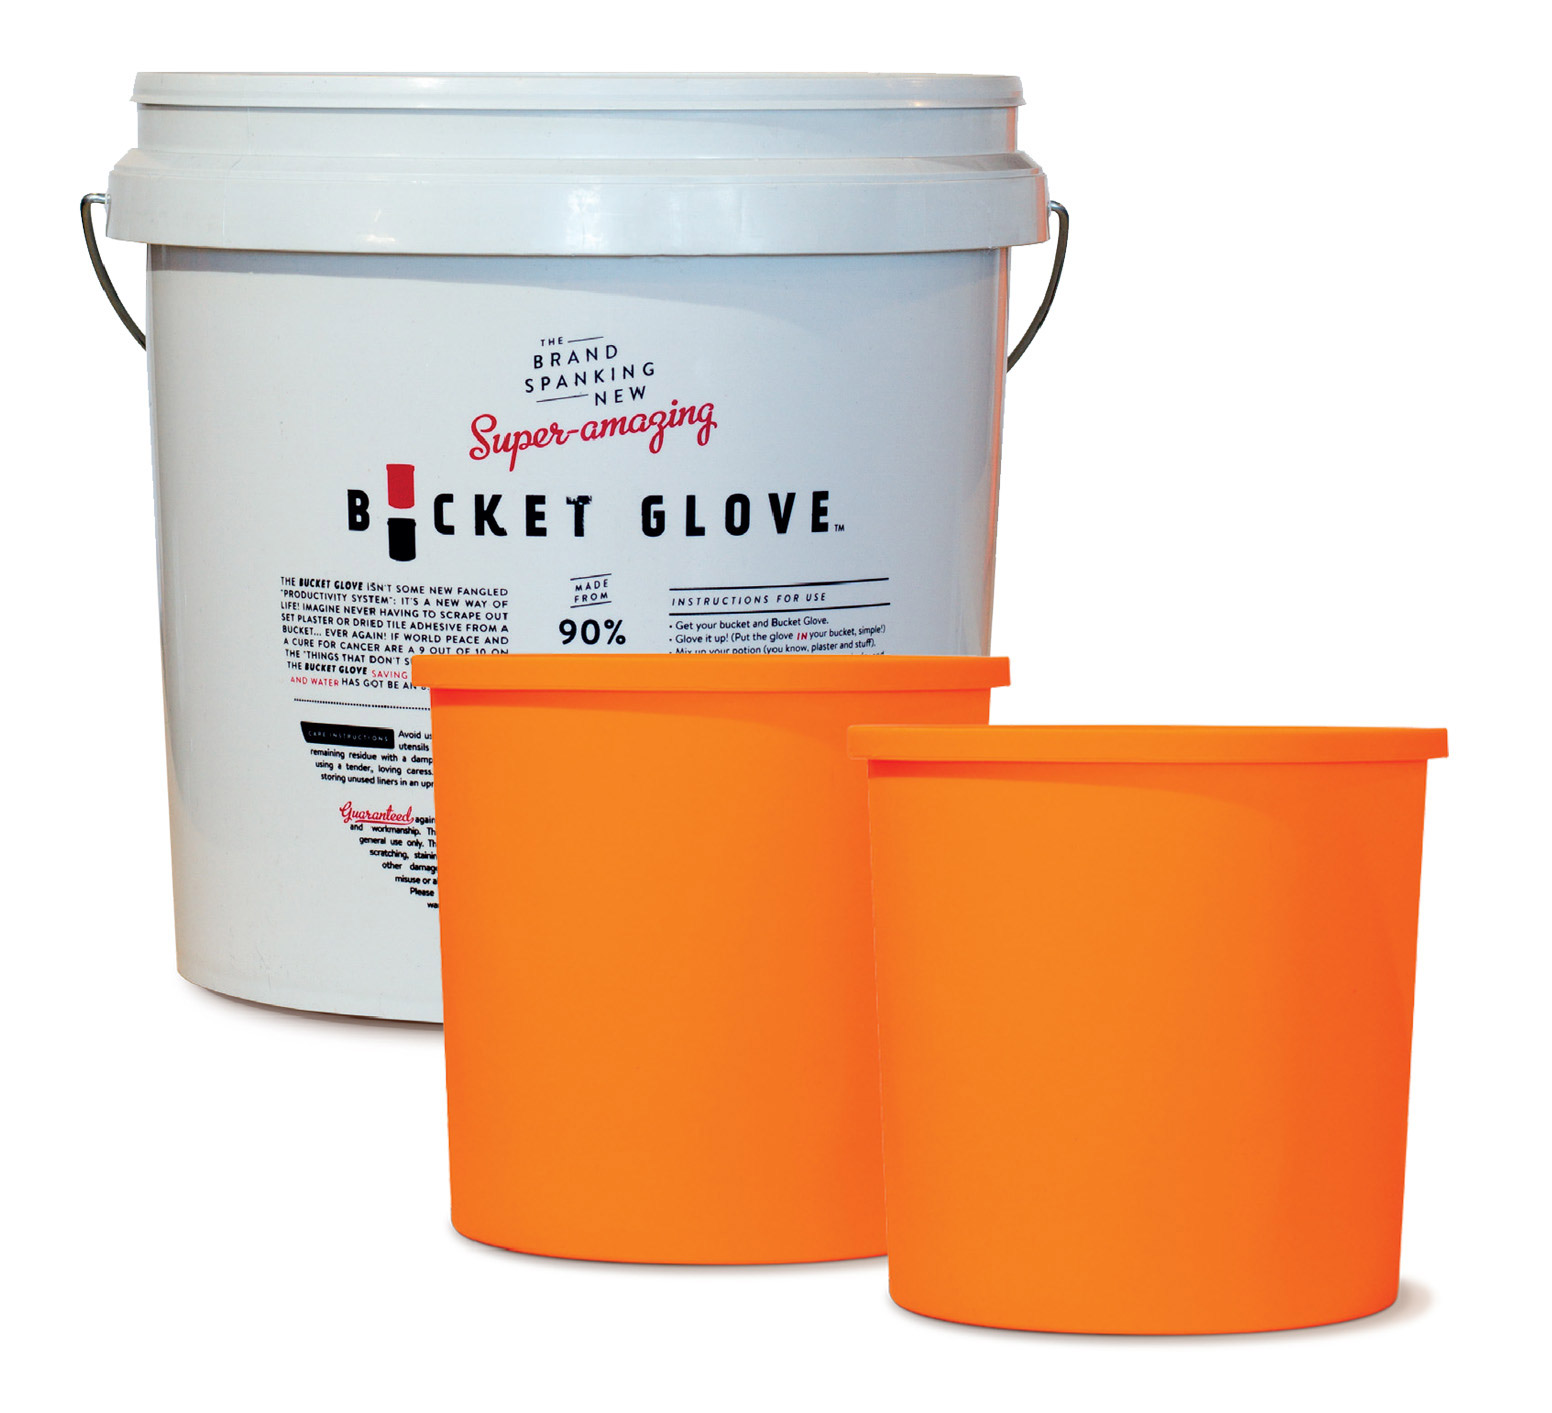 Bucket glove kit